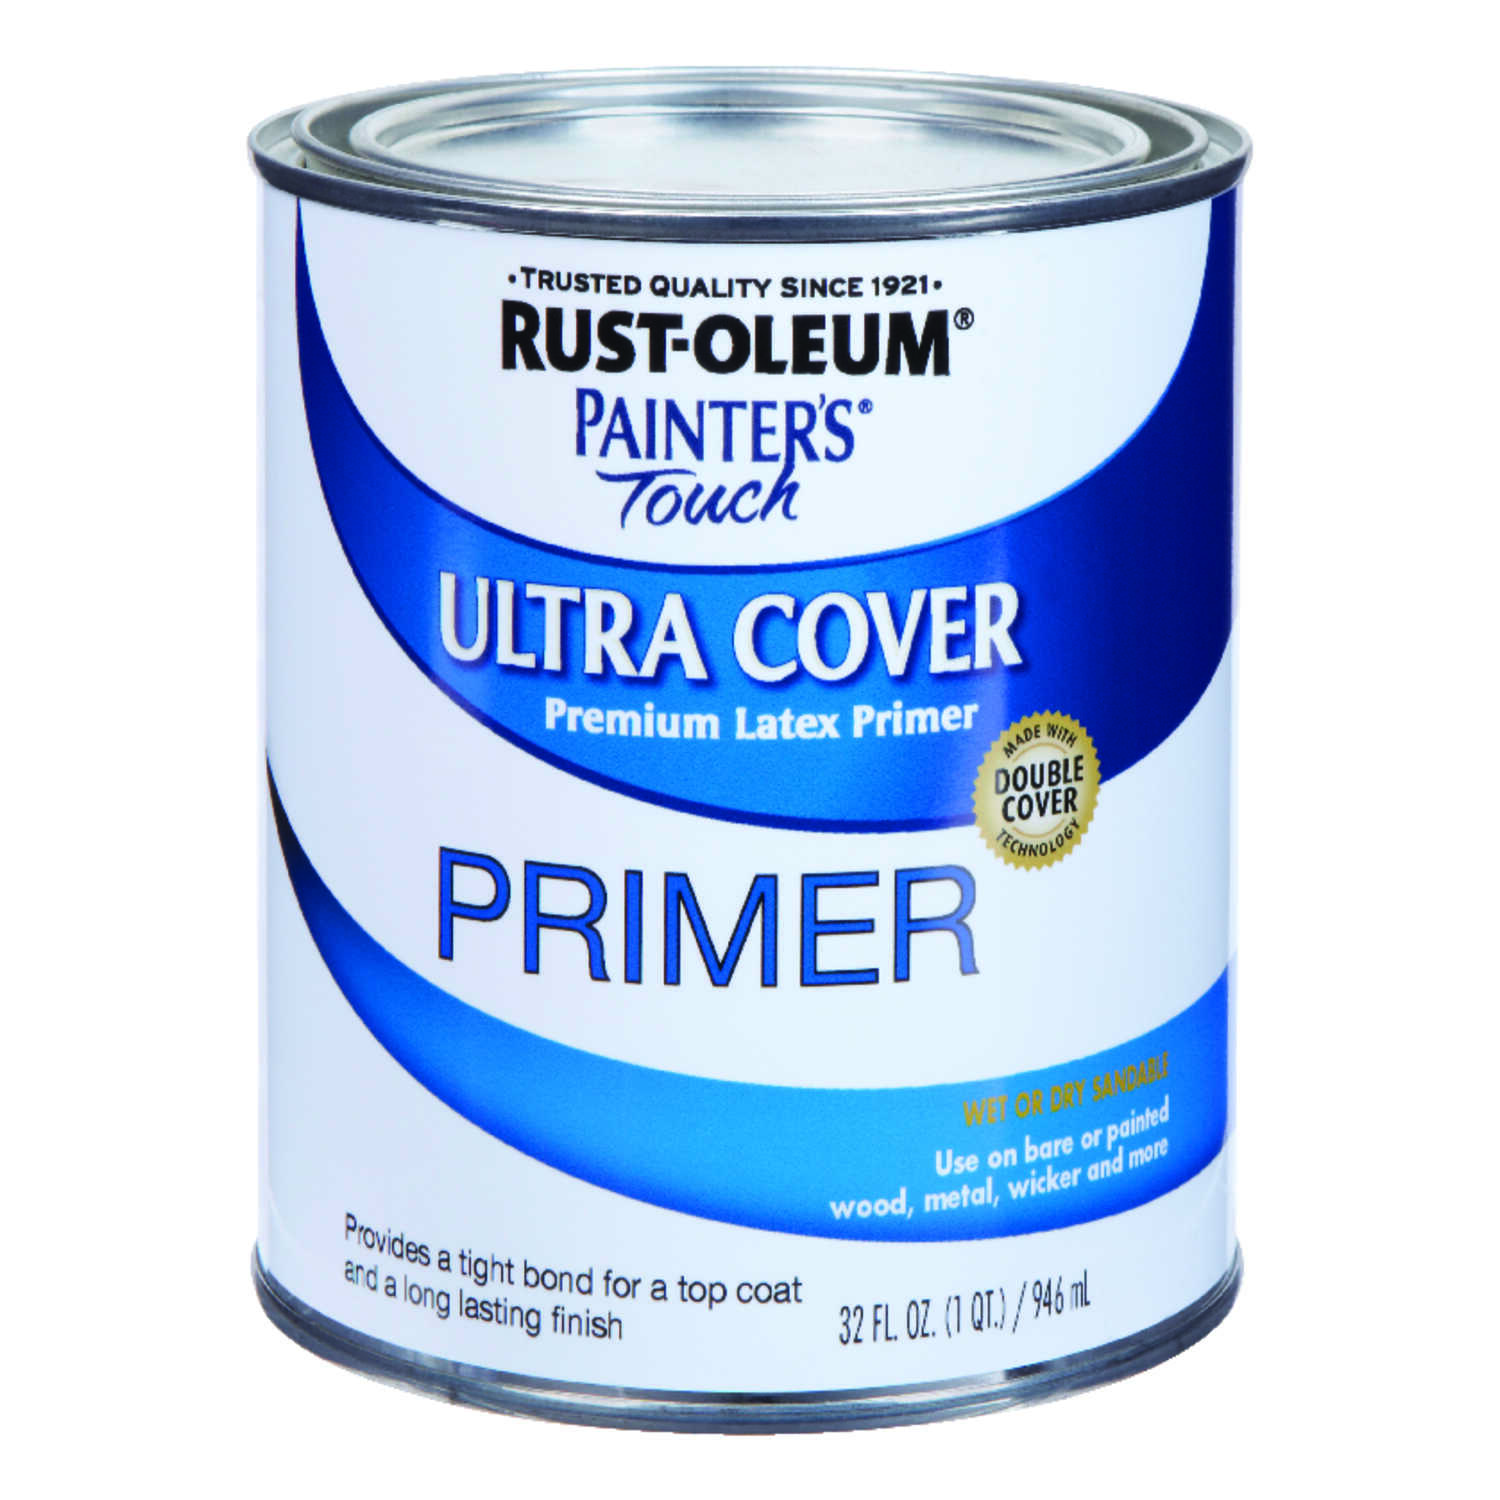 Rust-Oleum  Painters' Touch Ultra Cover  White  Primer  For All Surfaces 1 qt.